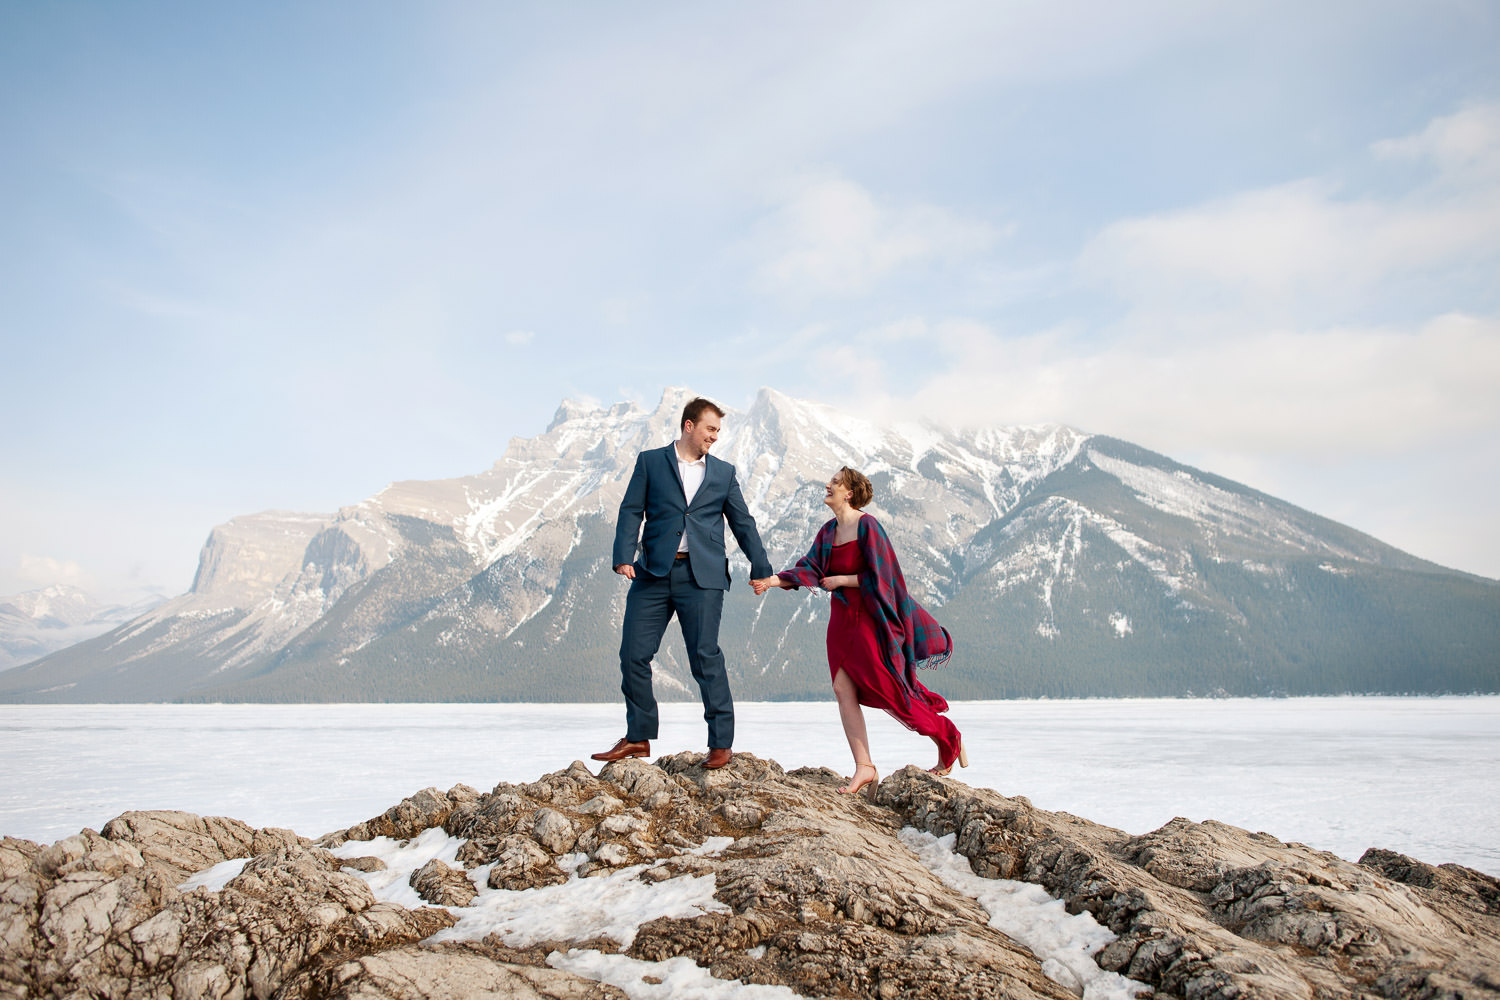 snowy engagement session at Lake Minnewanka in Banff National Park captured by Tara Whittaker Photography